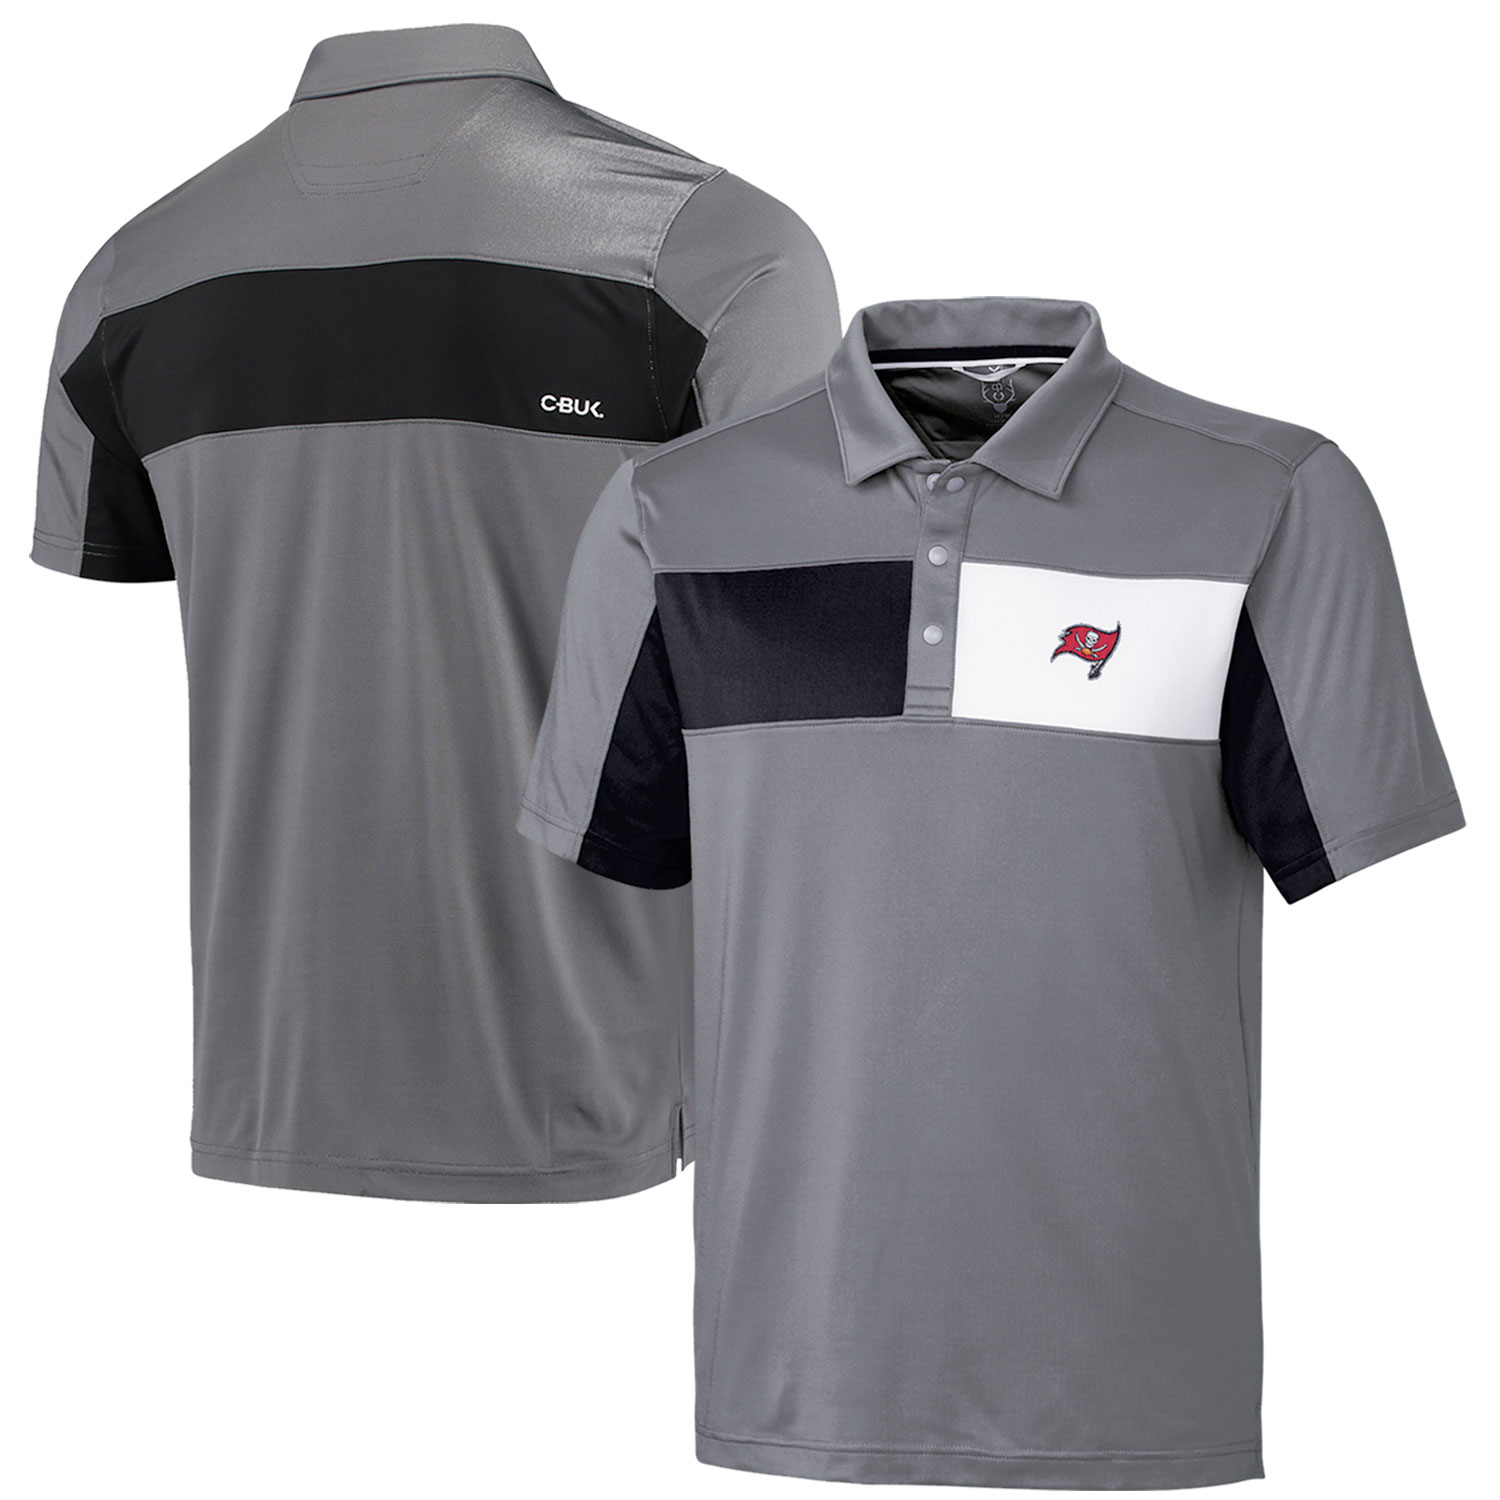 Tampa Bay Buccaneers CBUK by Cutter & Buck Logan Polo - Gray